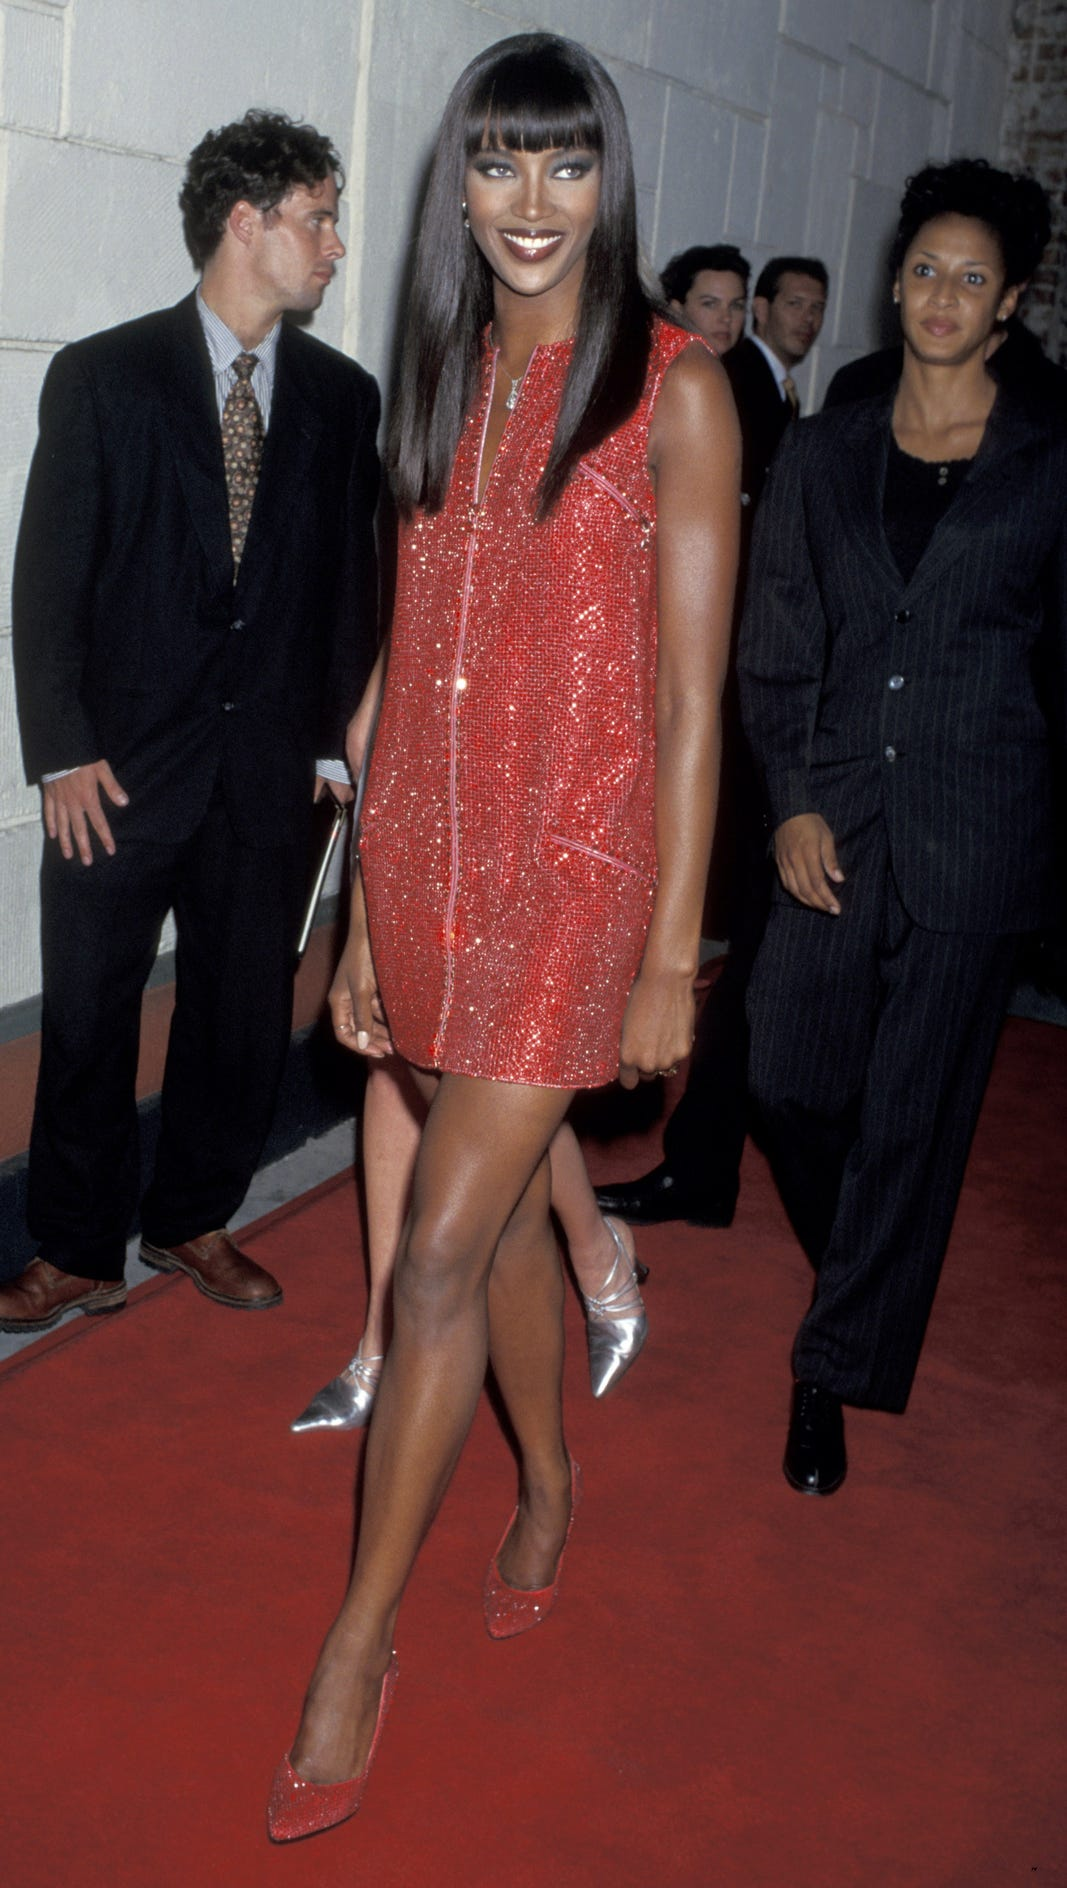 Naomi Campbell Greatest Fashion Looks 90s